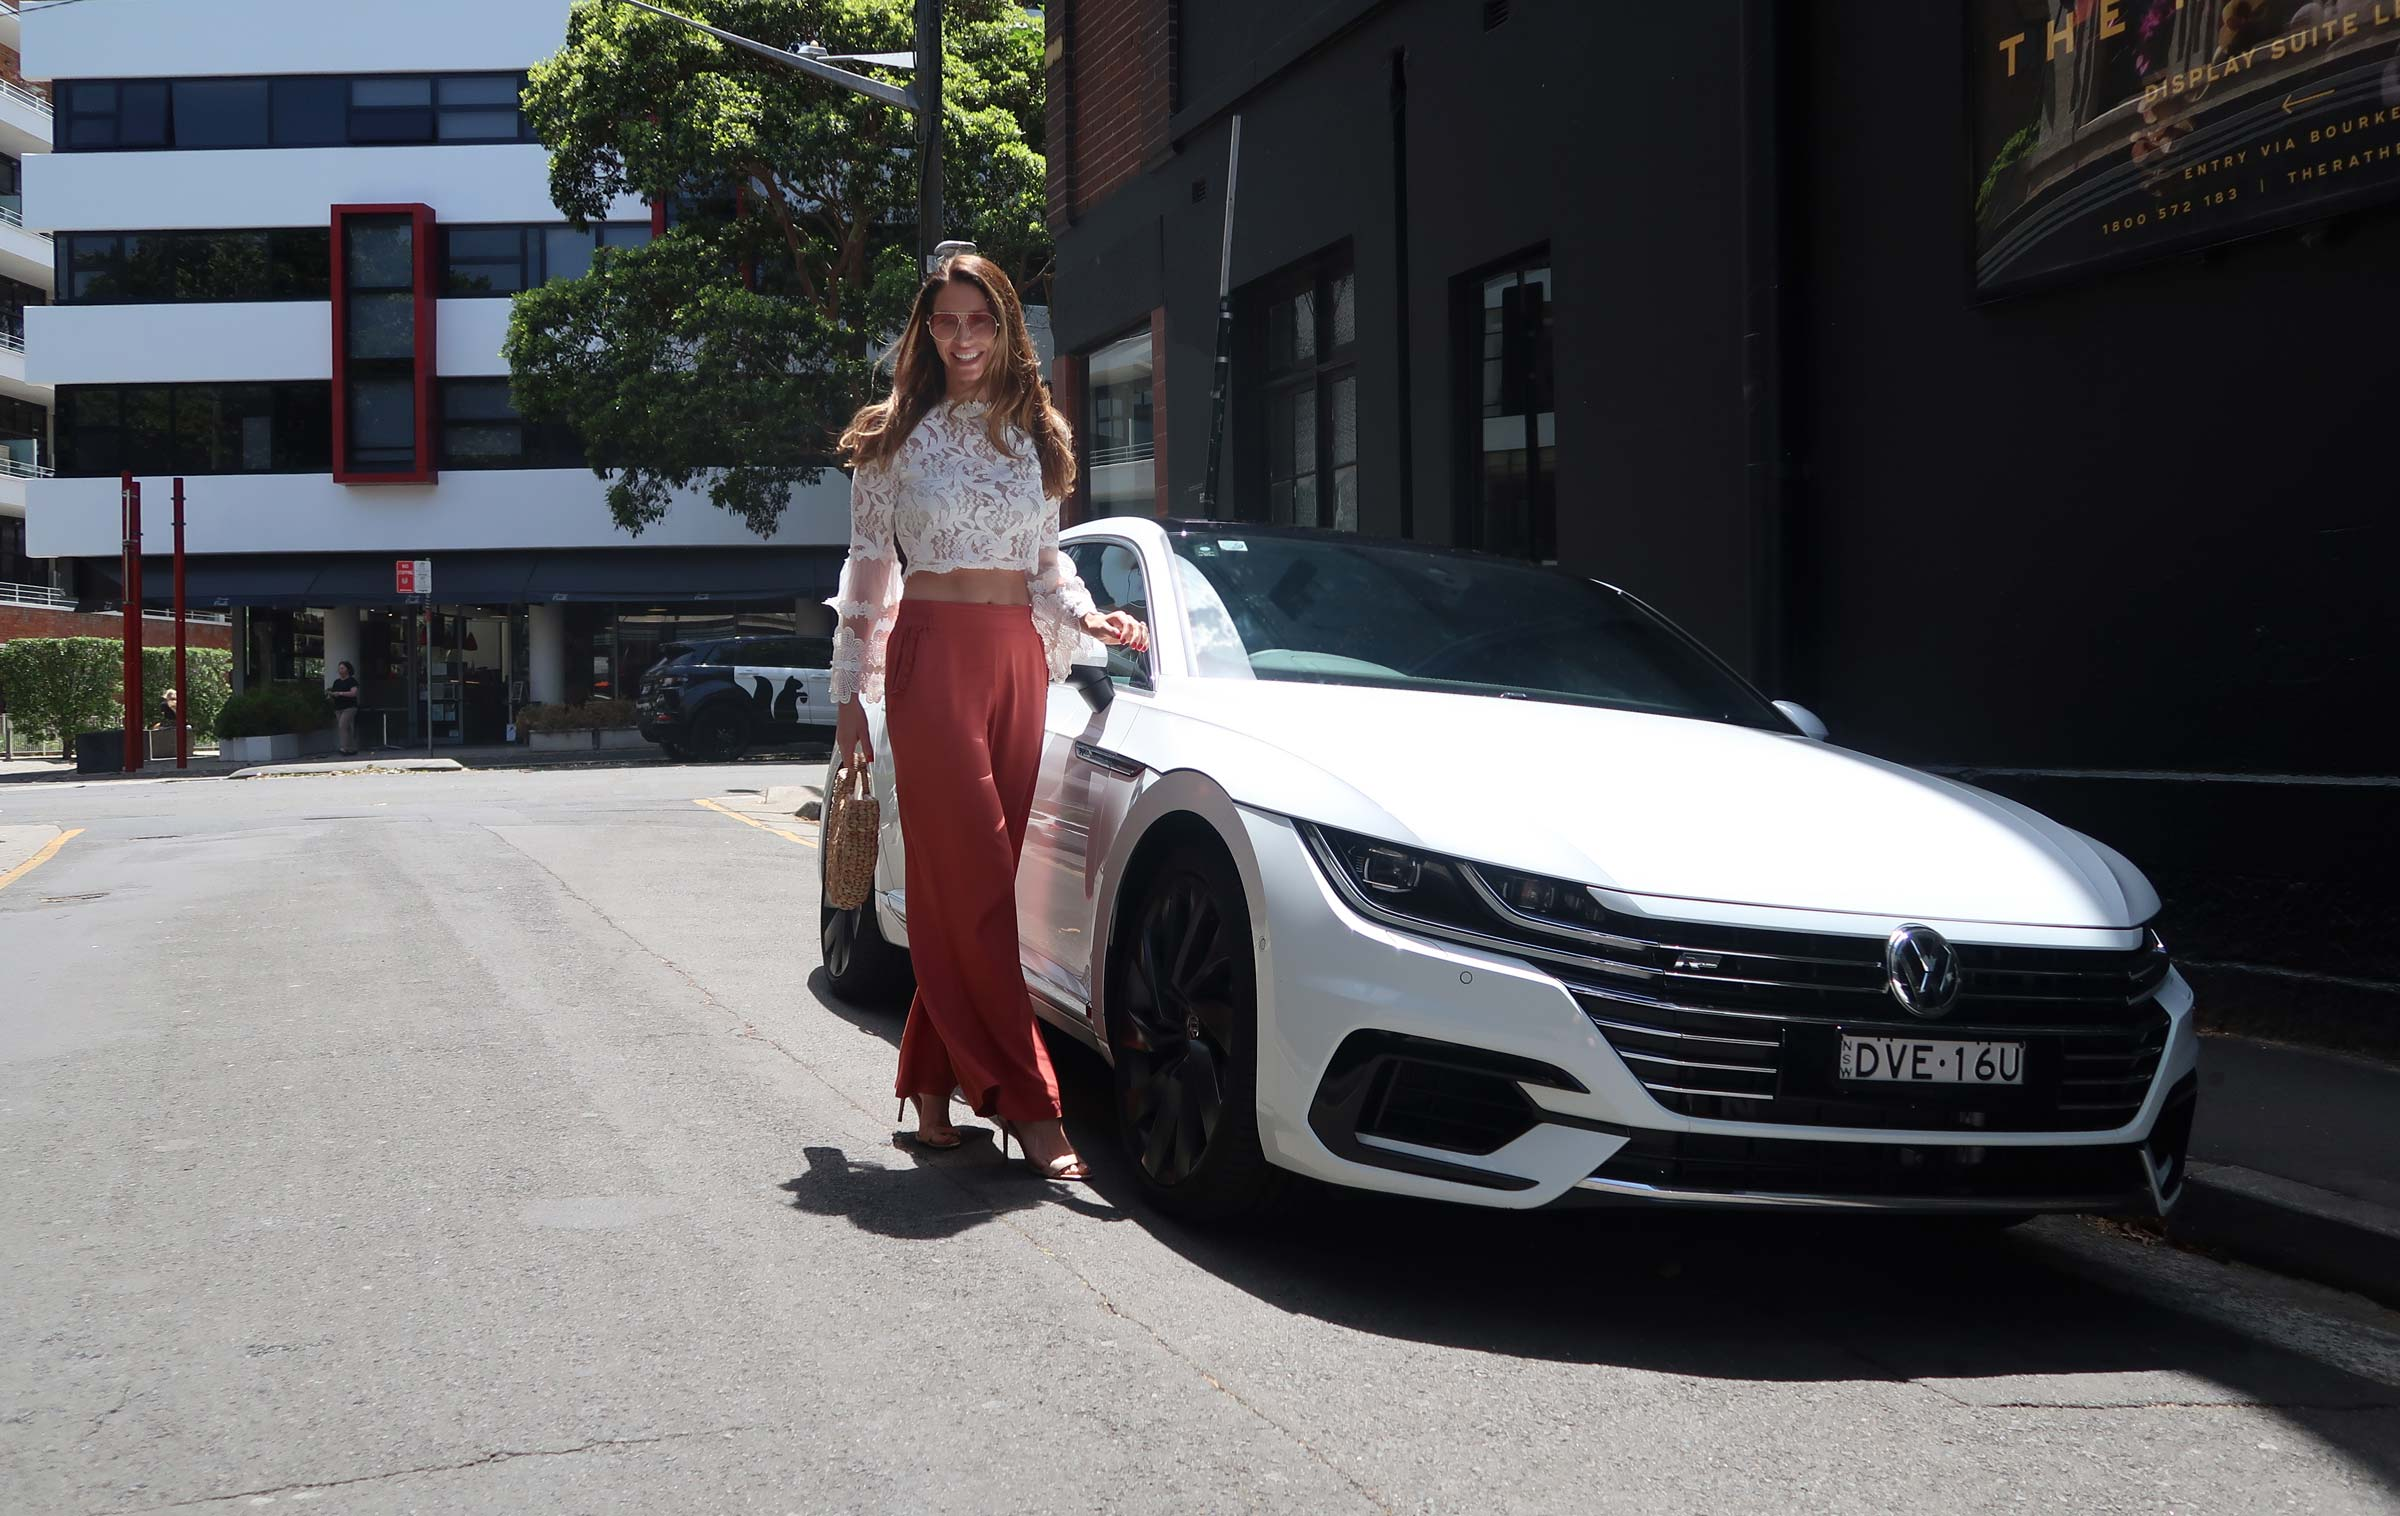 volkswagen-arteon-exterior-luxury-car-review